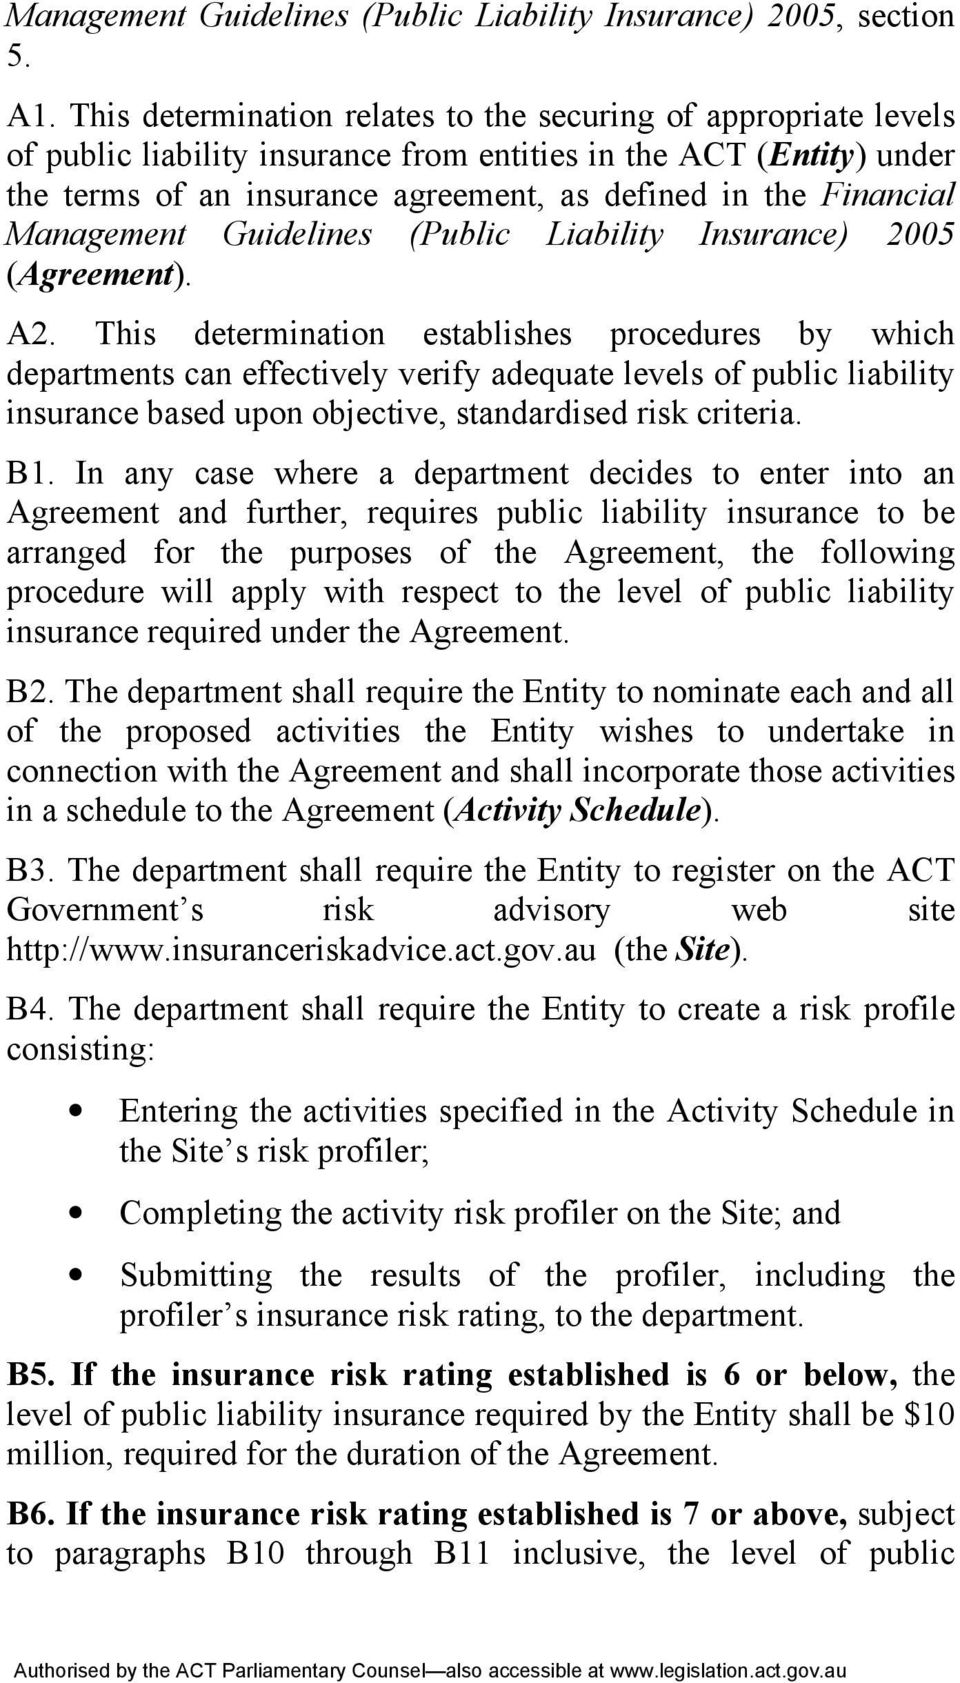 Management Guidelines (Public Liability Insurance) 2005 (Agreement). A2.